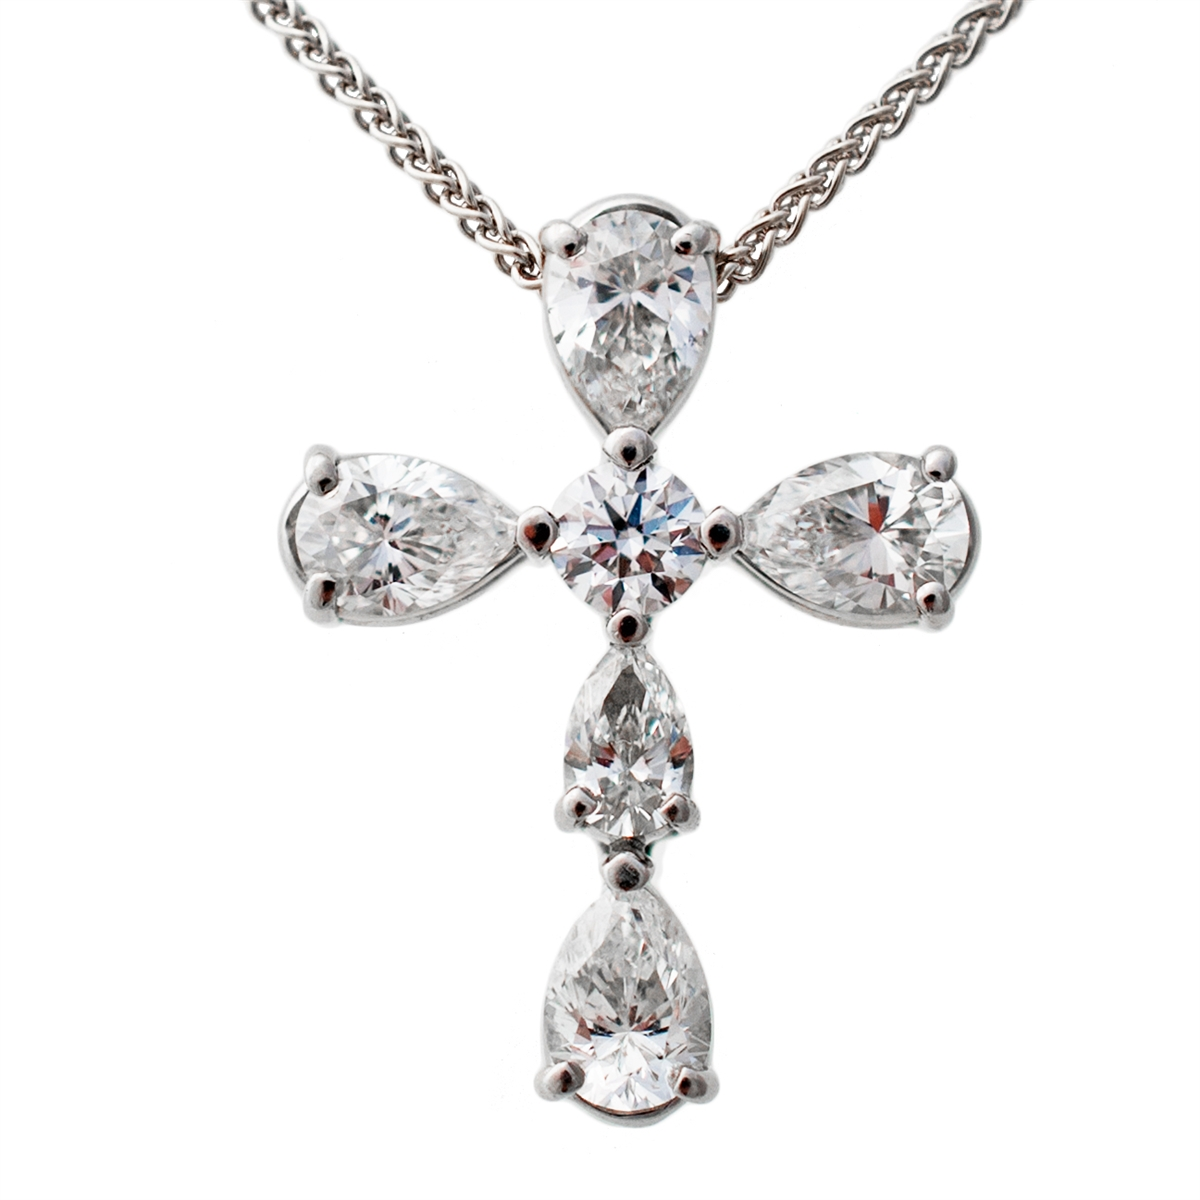 id pear necklace platinum org drop necklaces at jewelry pendant shaped solitaire carat z j diamond betteridge